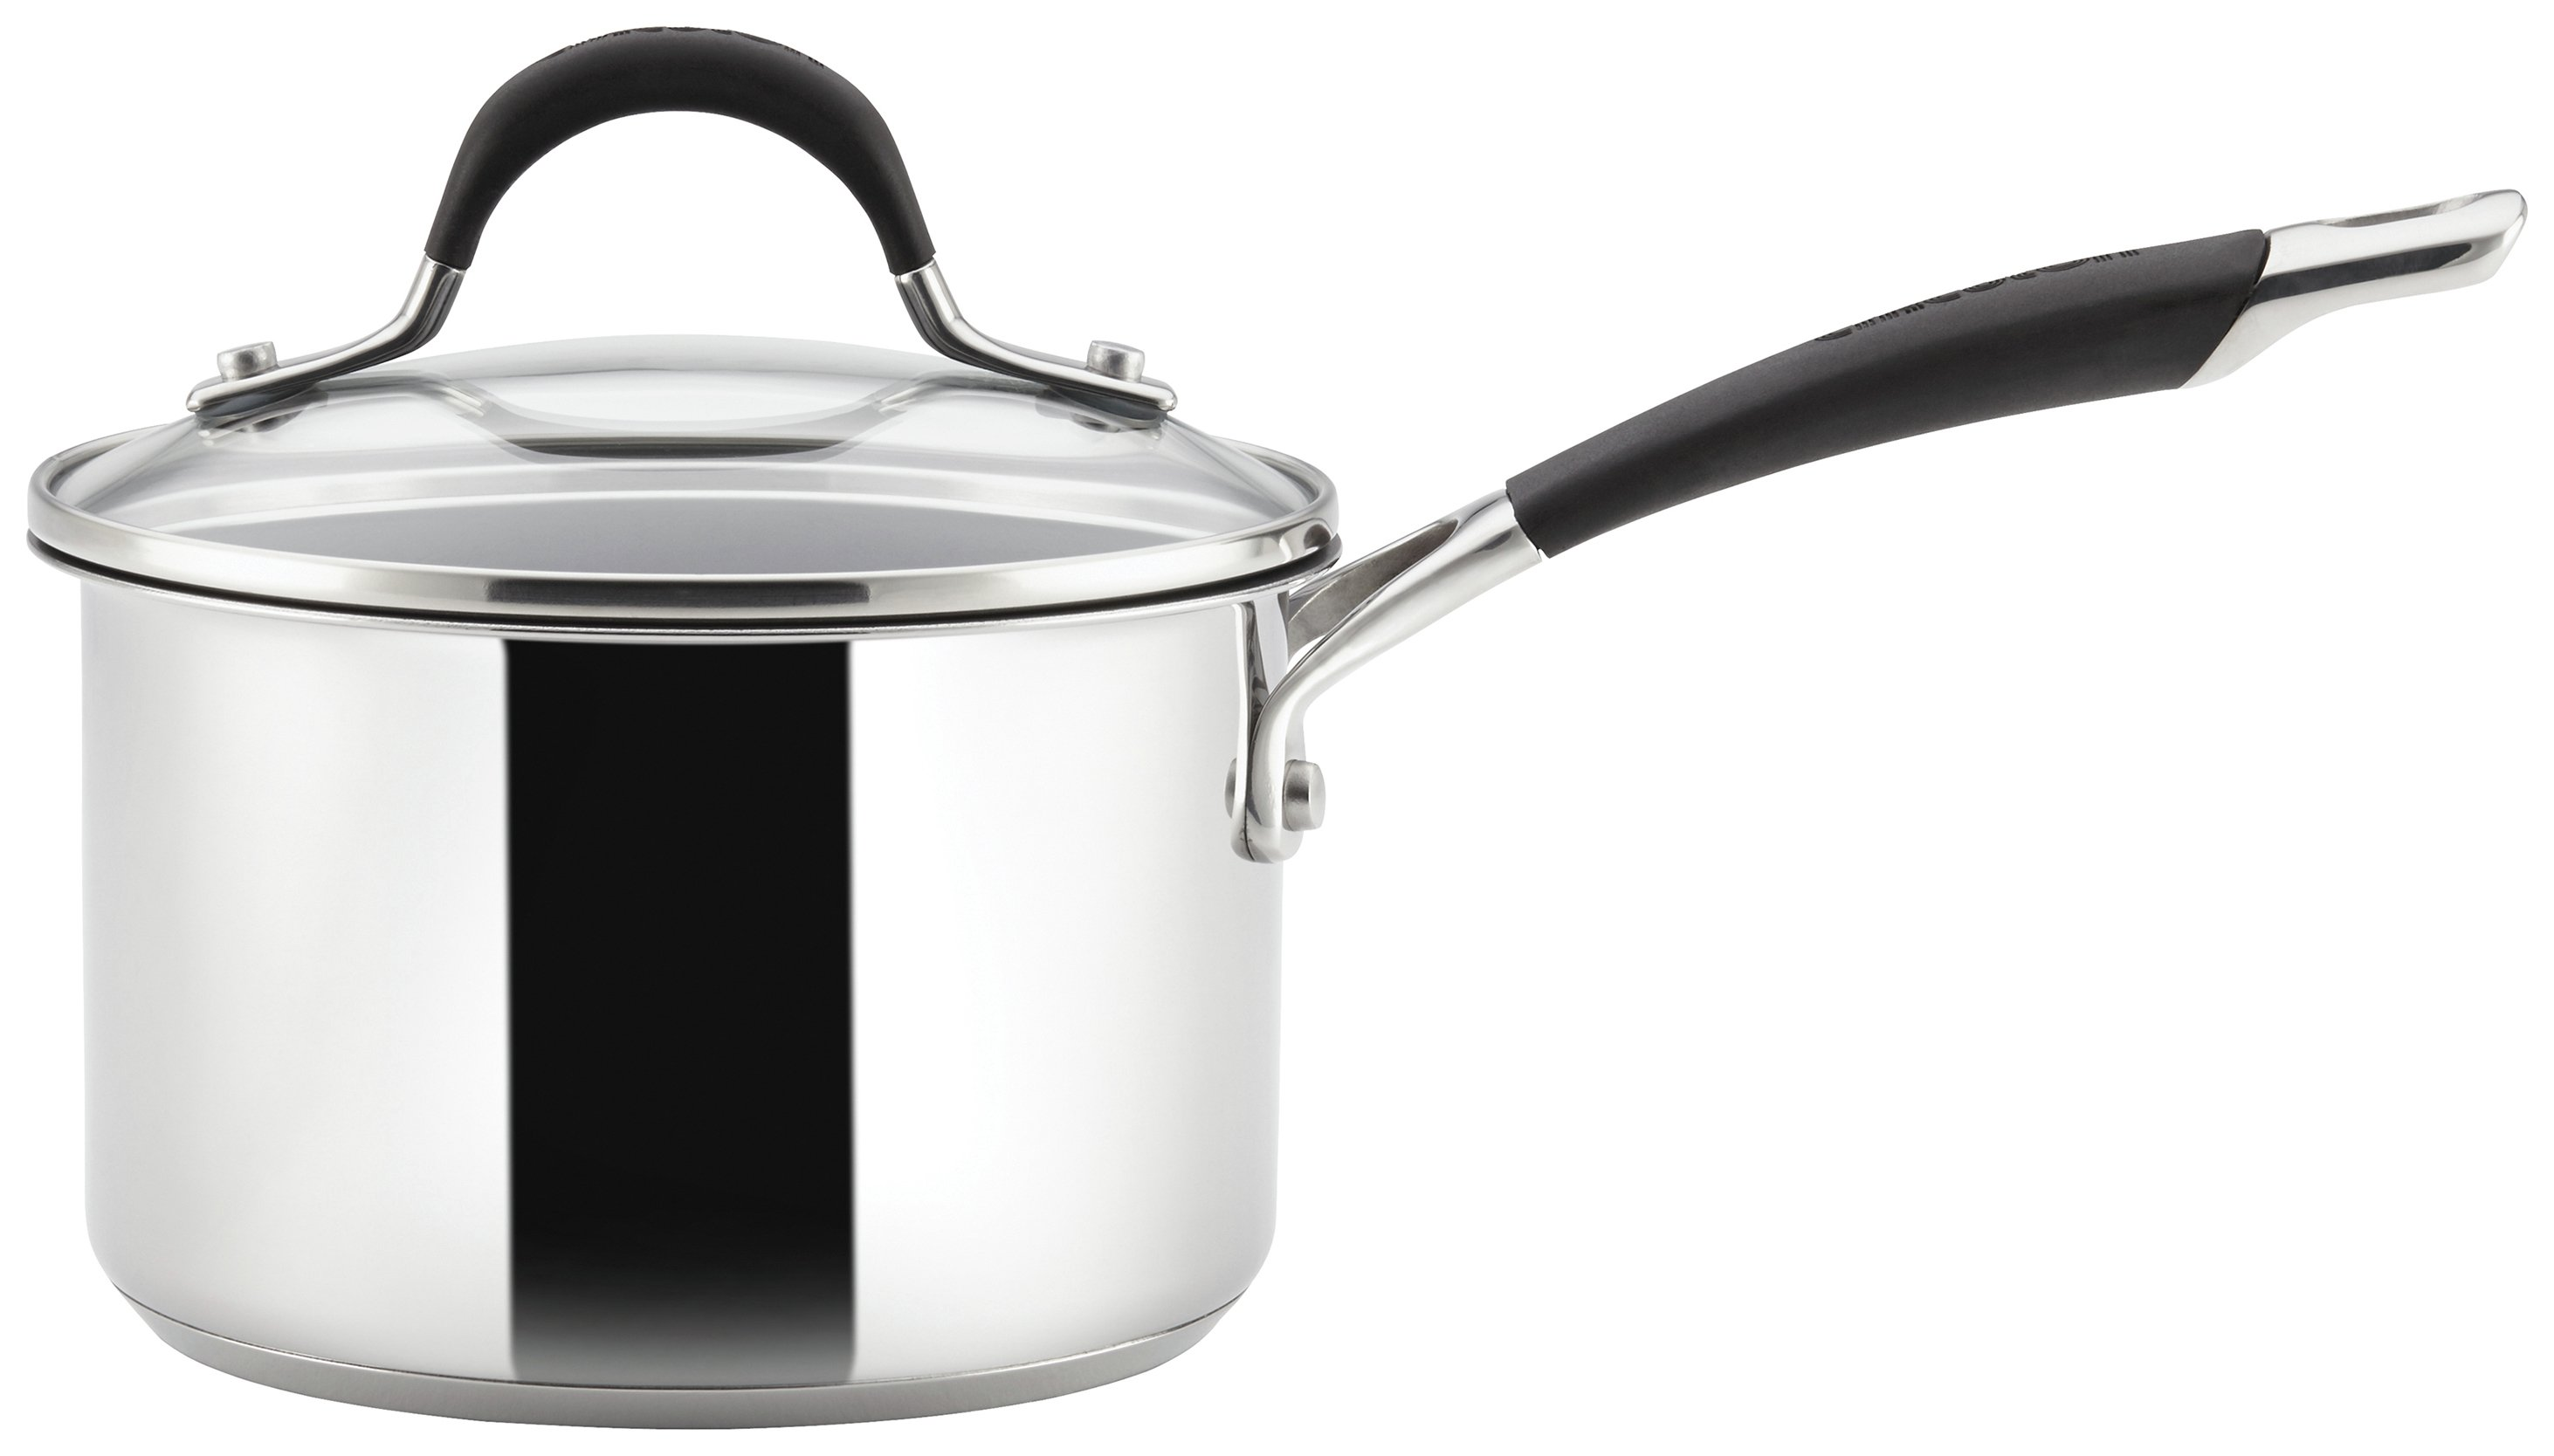 Image of Circulon Momentum 18cm Stainless Steel Covered Saucepan.